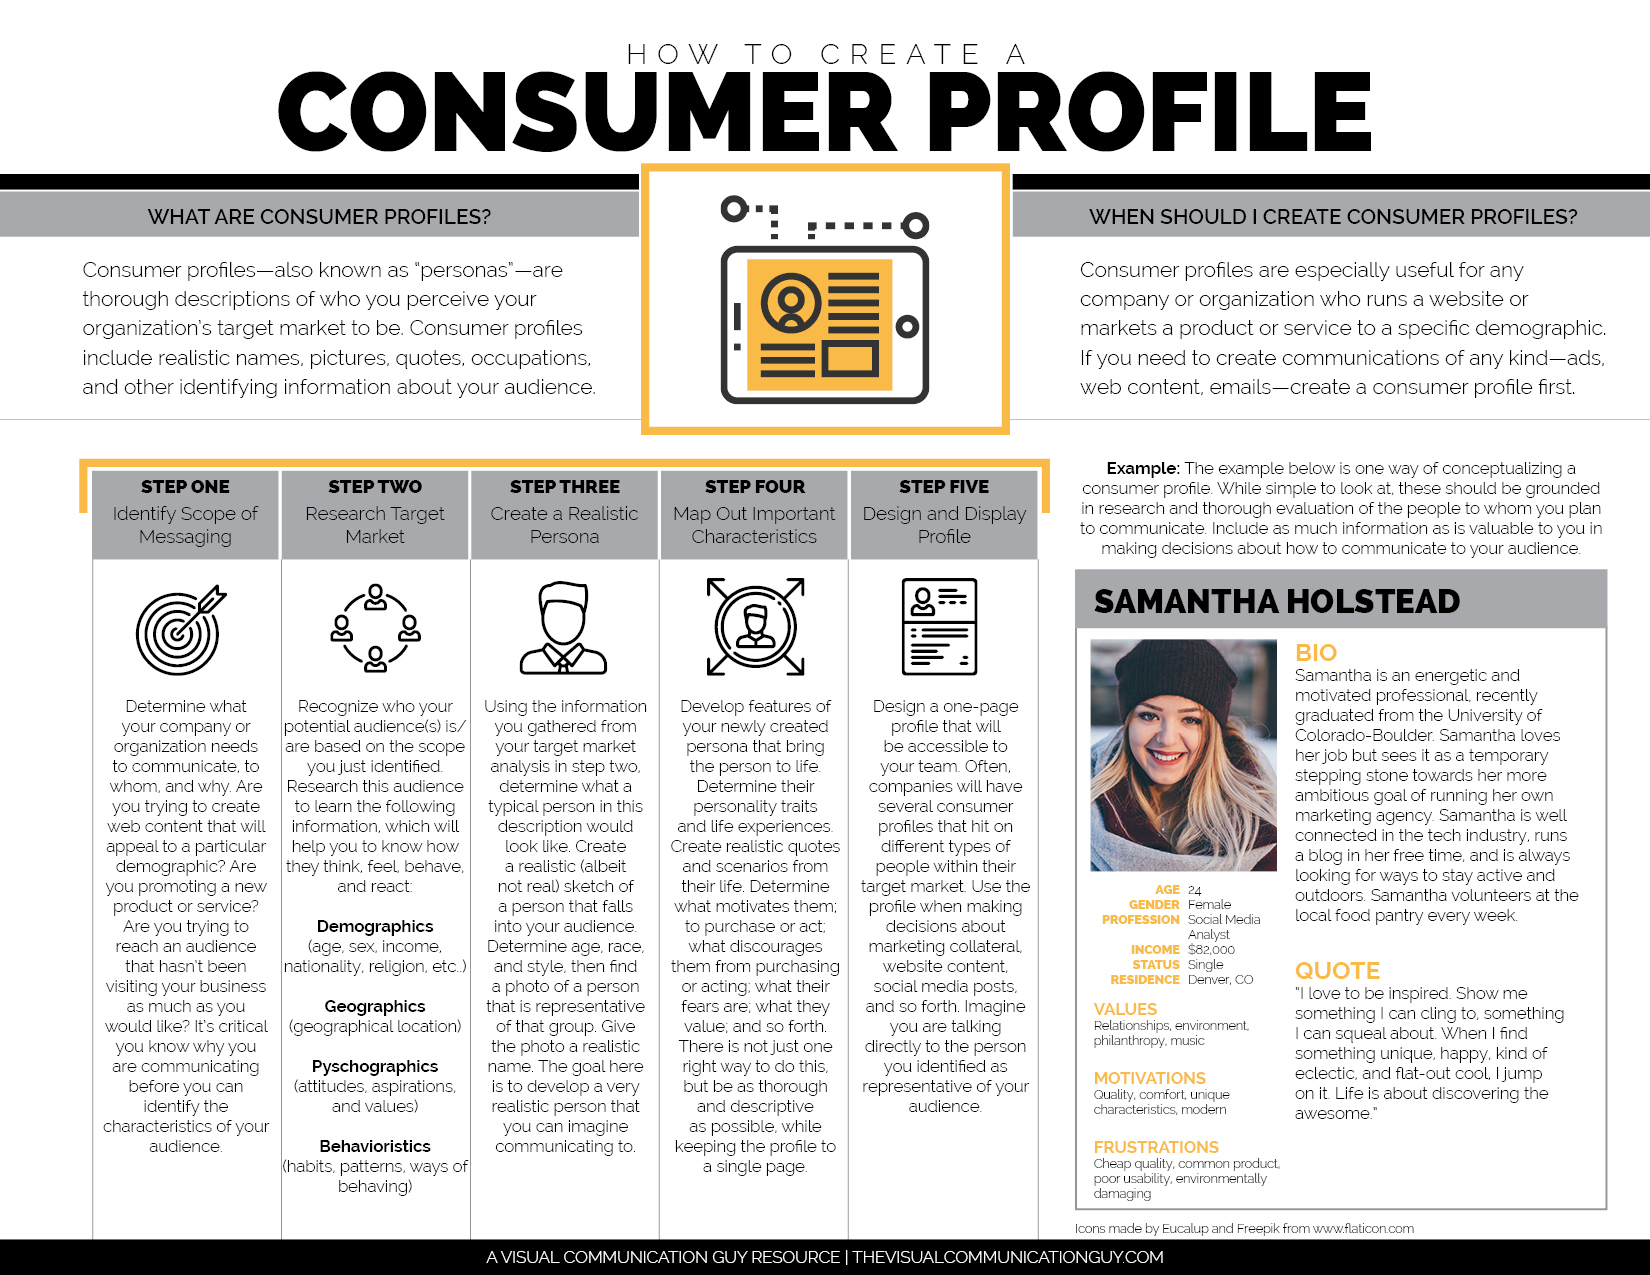 How To Do A Consumer Profile The Visual Communication